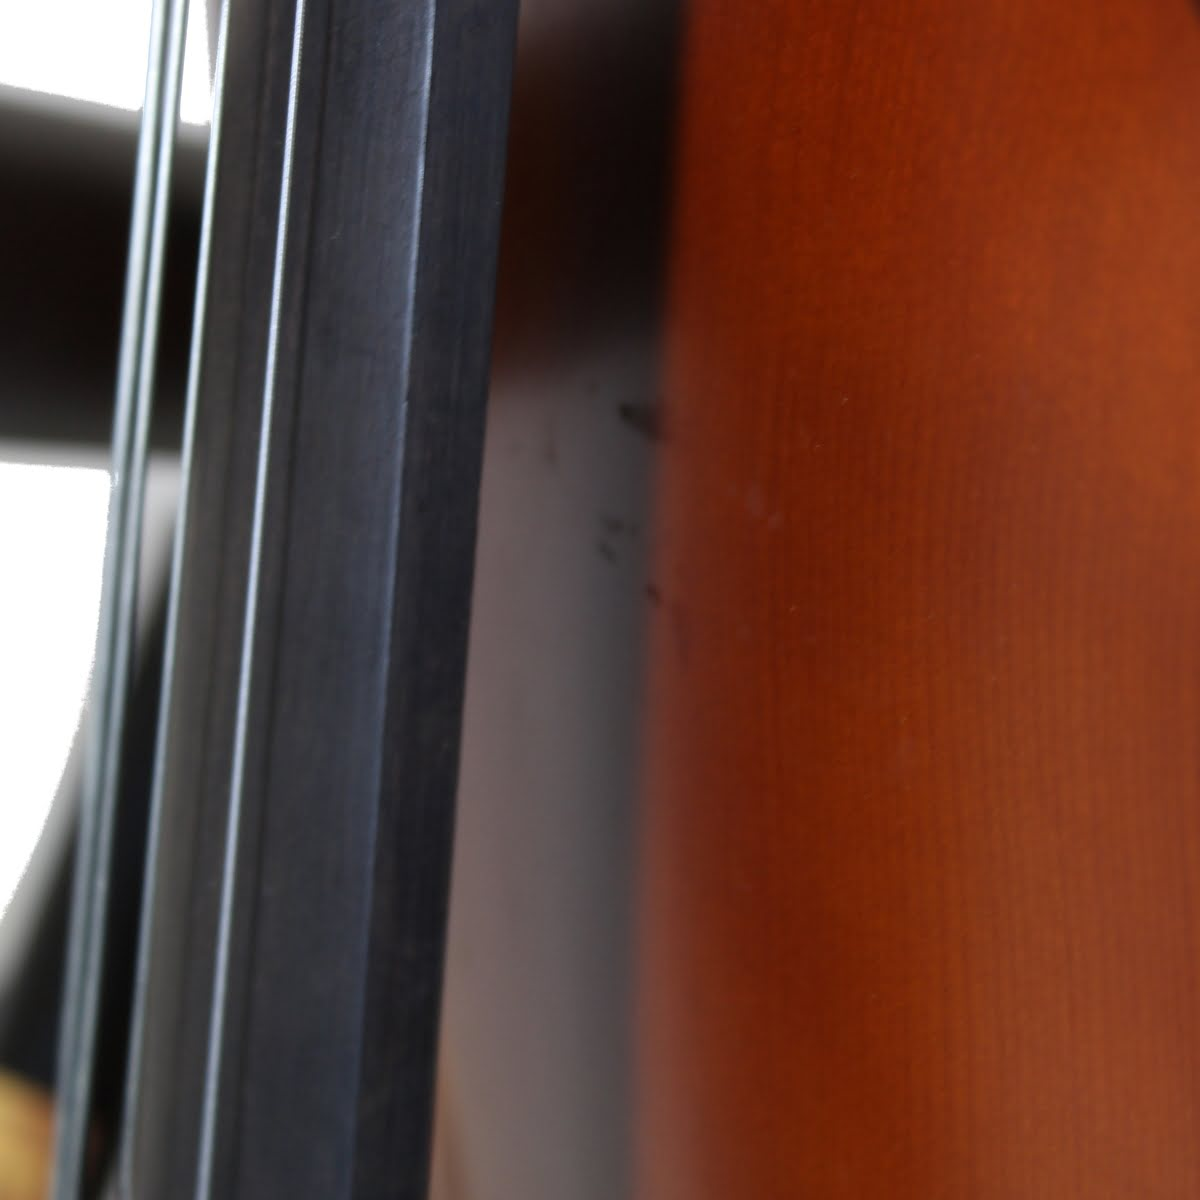 Used and Needing Repair Primavera 100 1/8 Size Cello Marks on Front